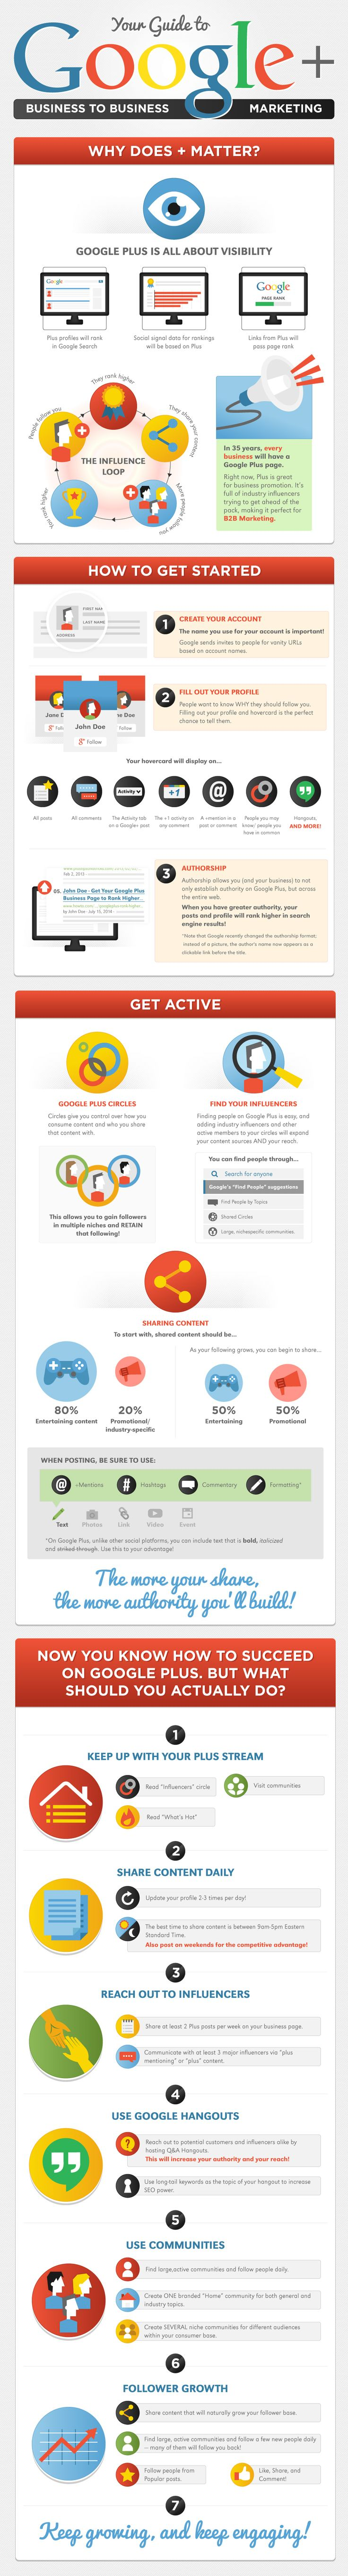 Your Guide to #GooglePlus B2B Marketing [INFOGRAPHIC] #google+ #socialmedia